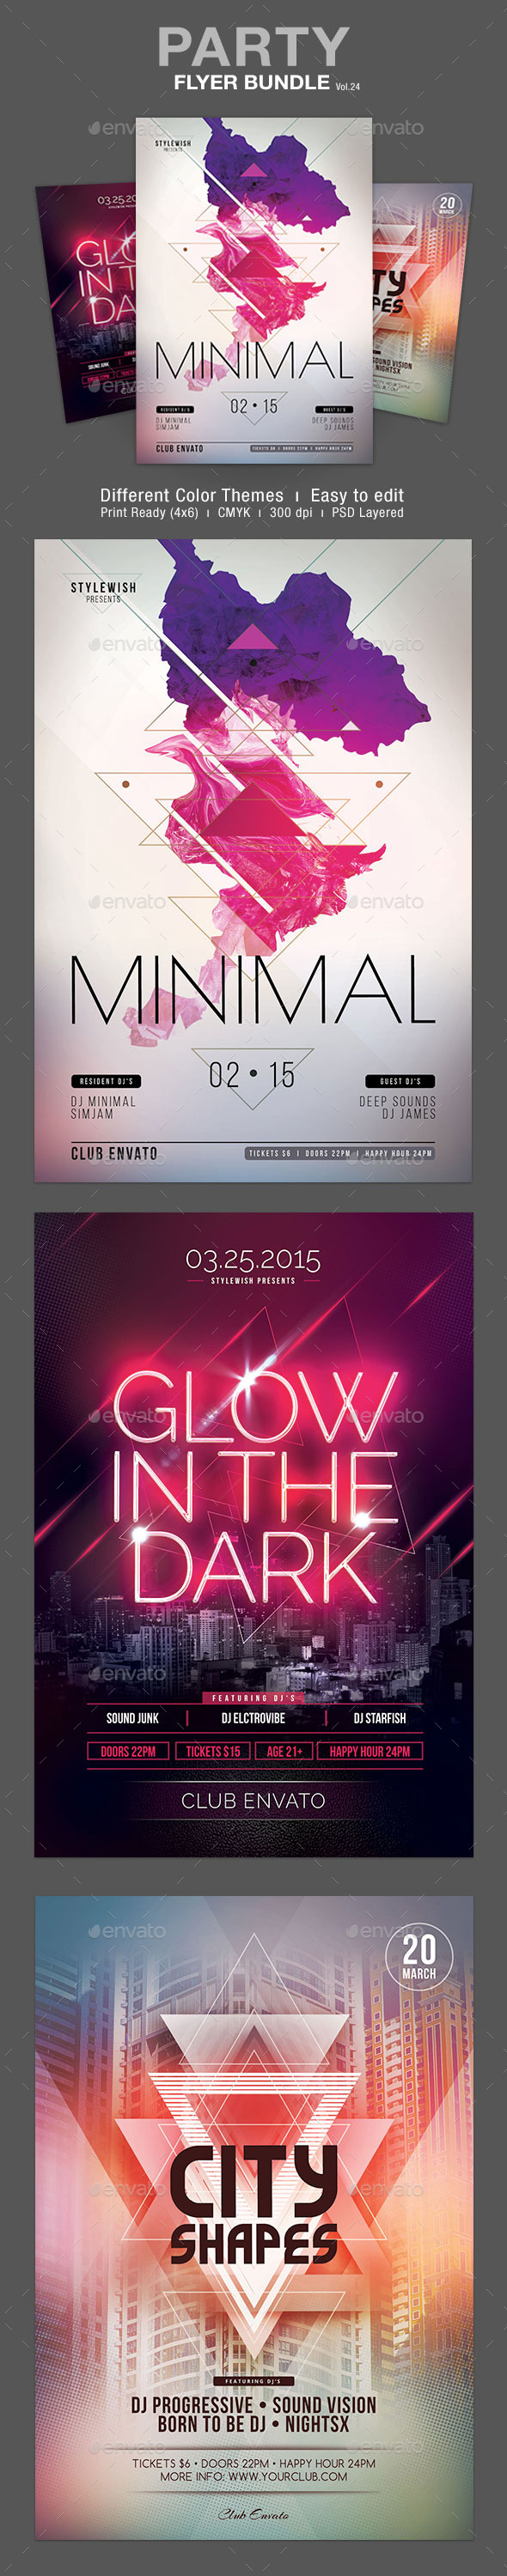 GraphicRiver Party Flyer Bundle Vol.24 10740494